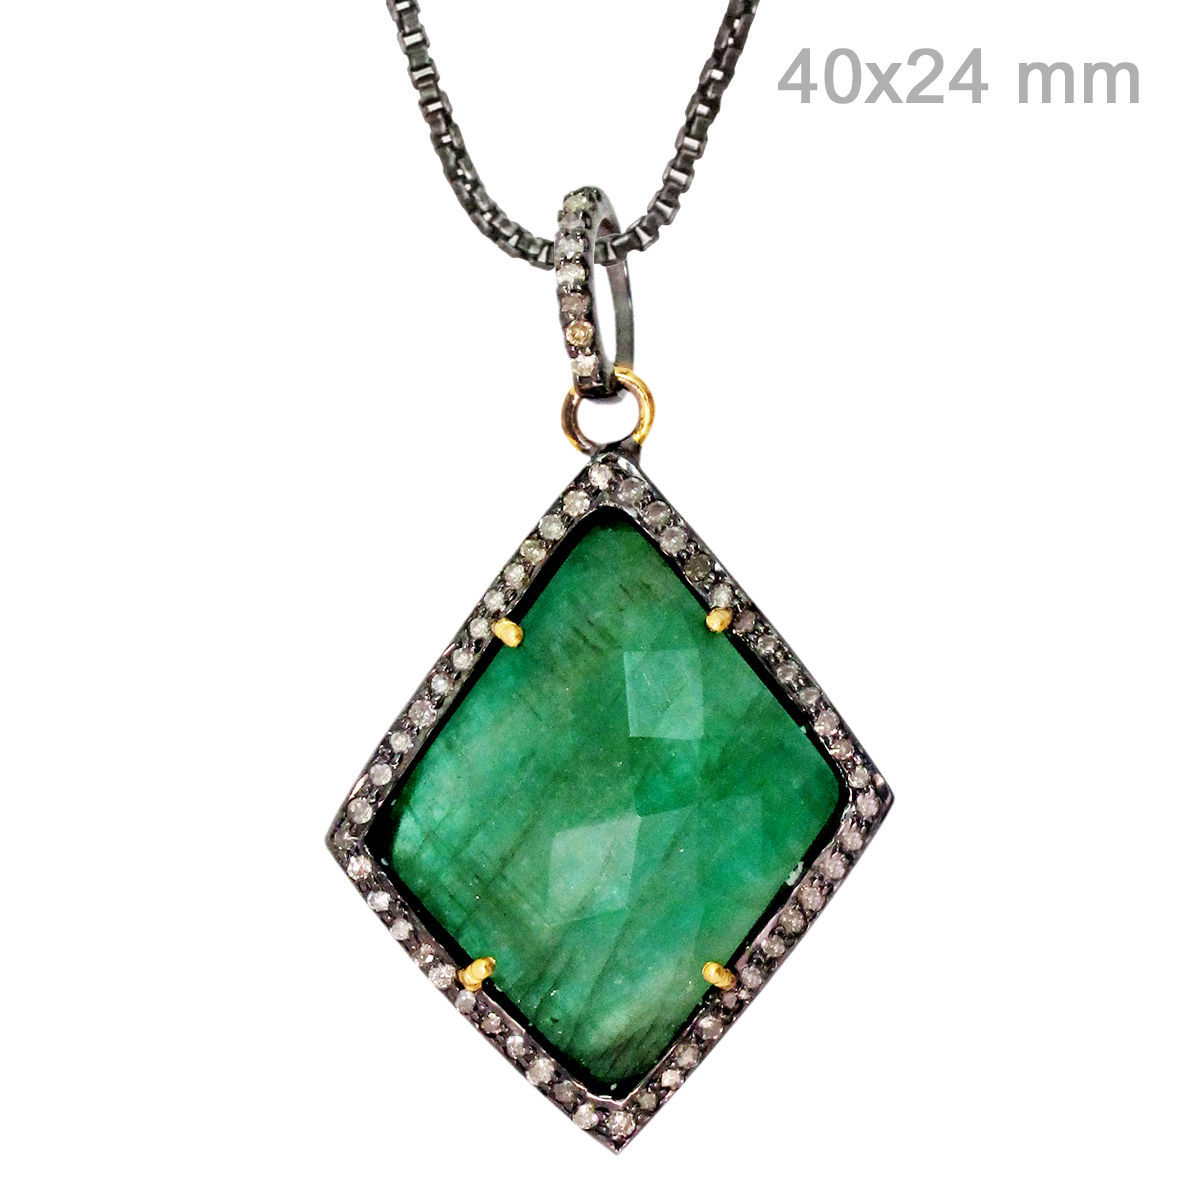 Primary image for Emerald Gemstone Square Pendant Sterling Silver Diamond Studded 14k Gold Jewelry